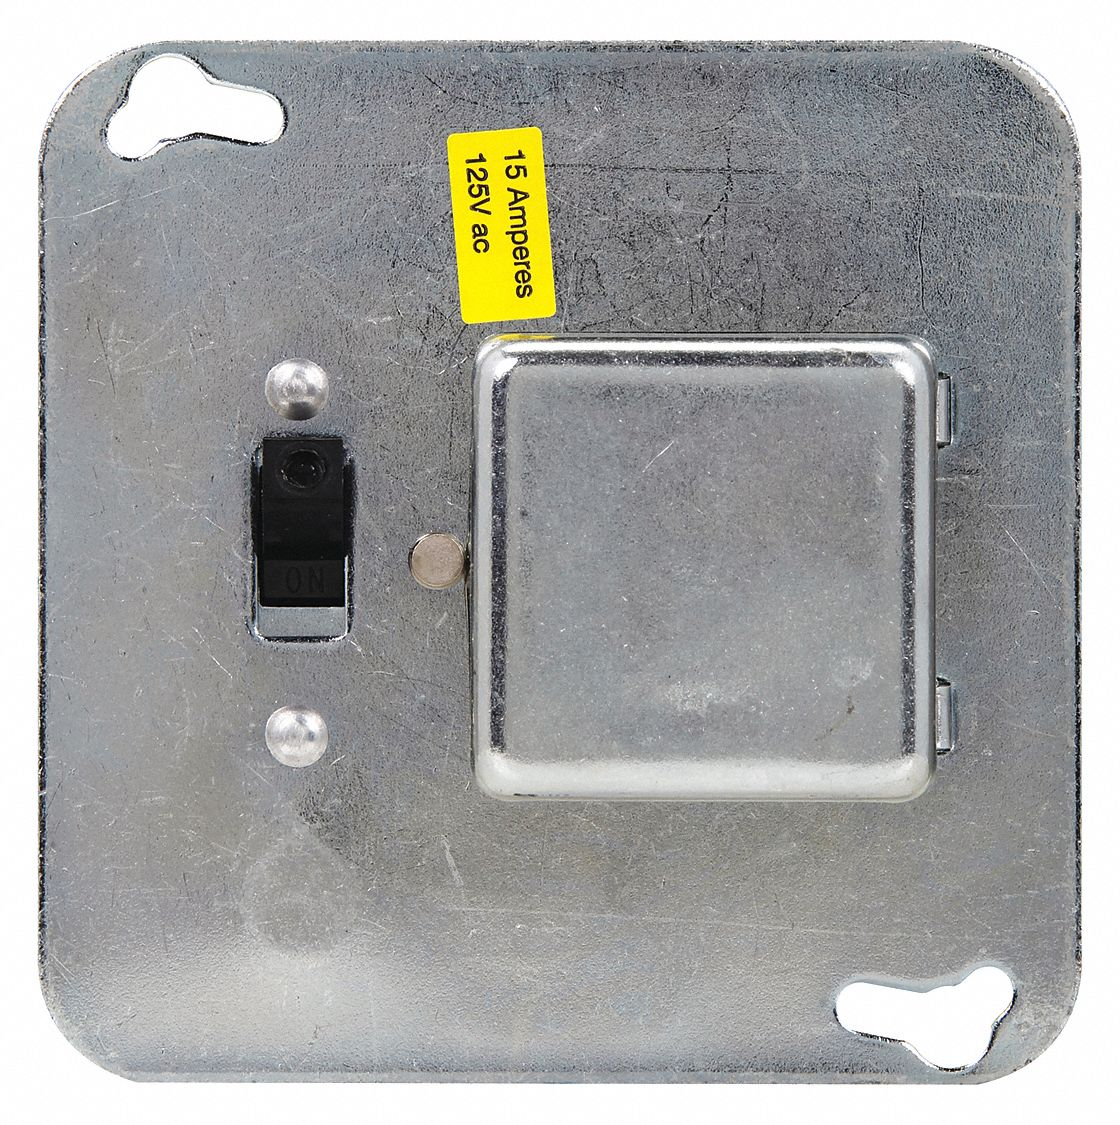 EATON BUSSMANN Plug Fuse Box Cover Unit, 4